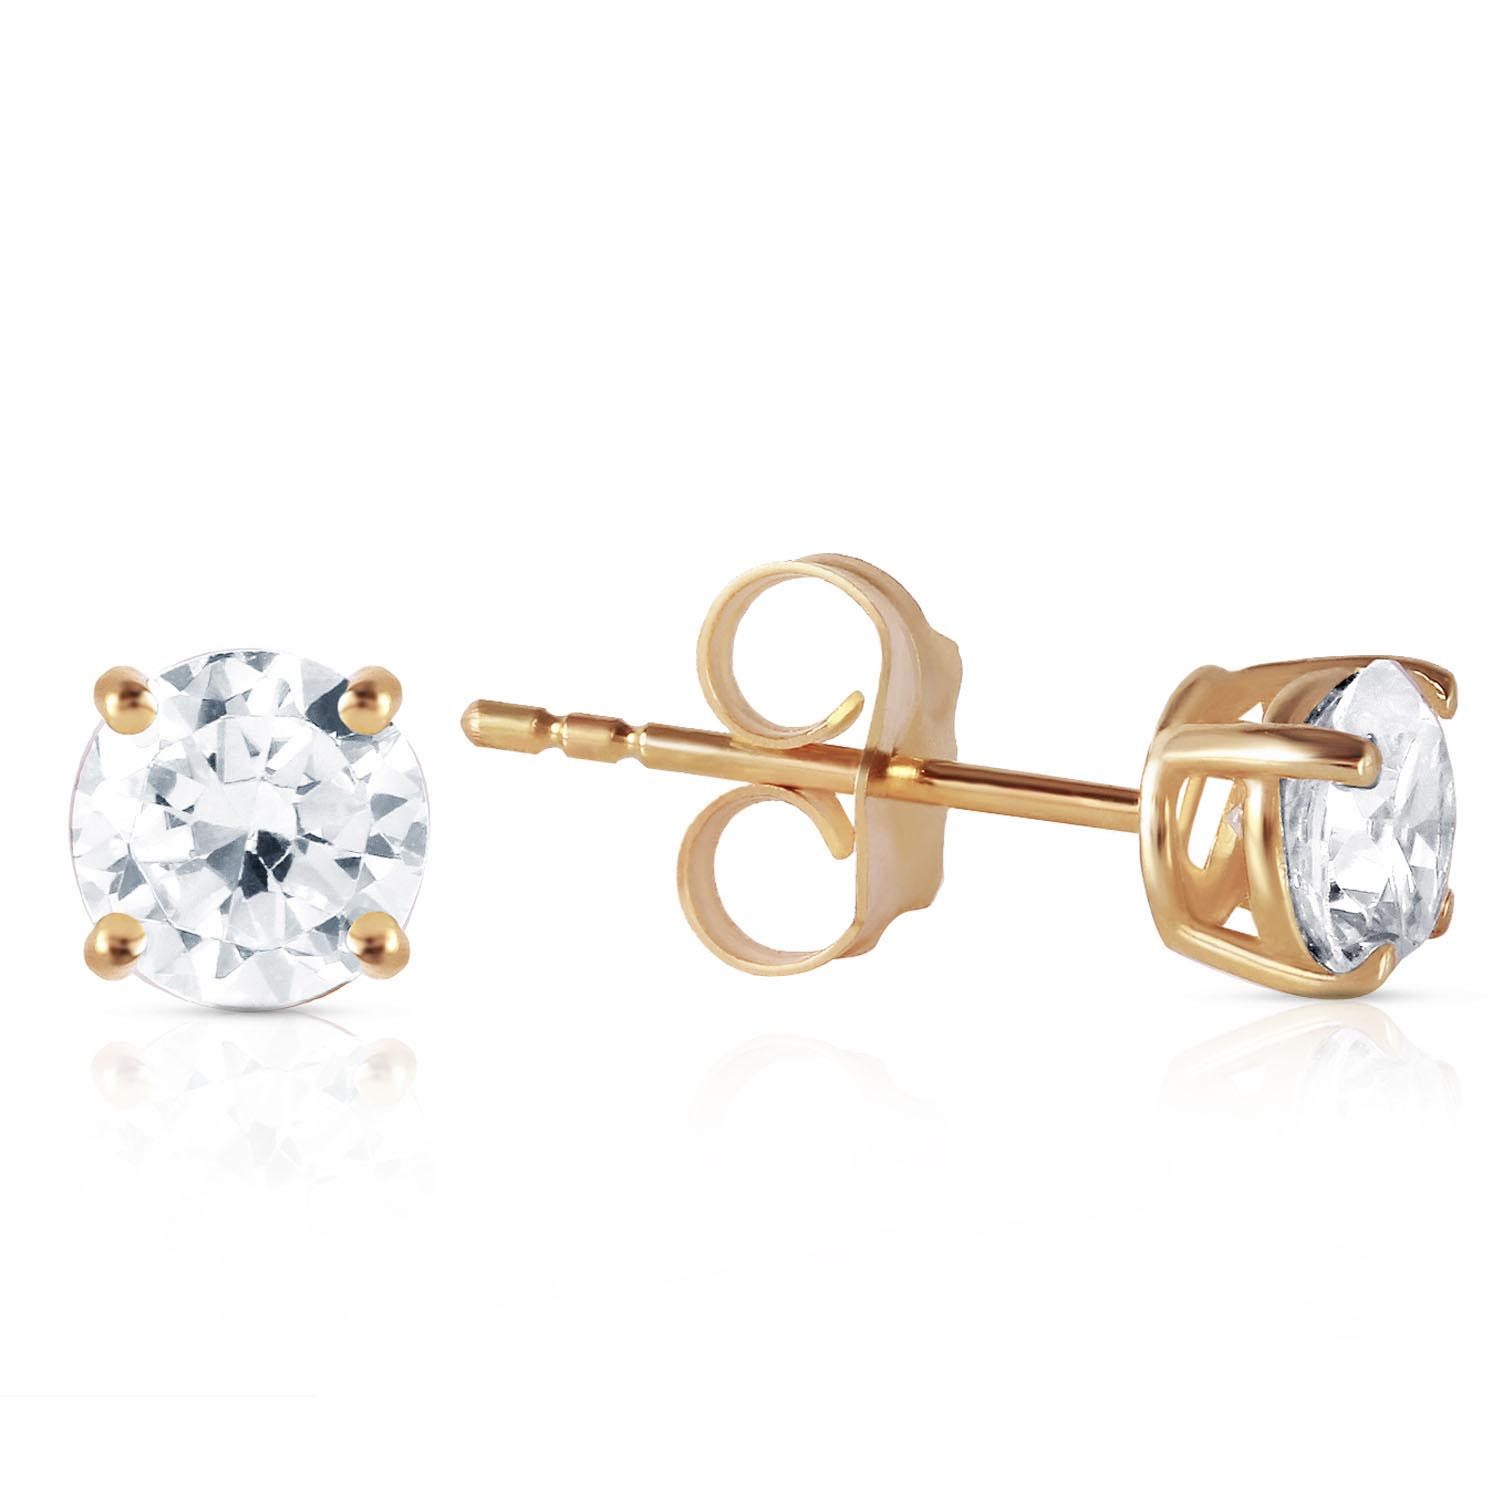 Diamond Stud Earrings 0.8 ctw in 9ct Gold